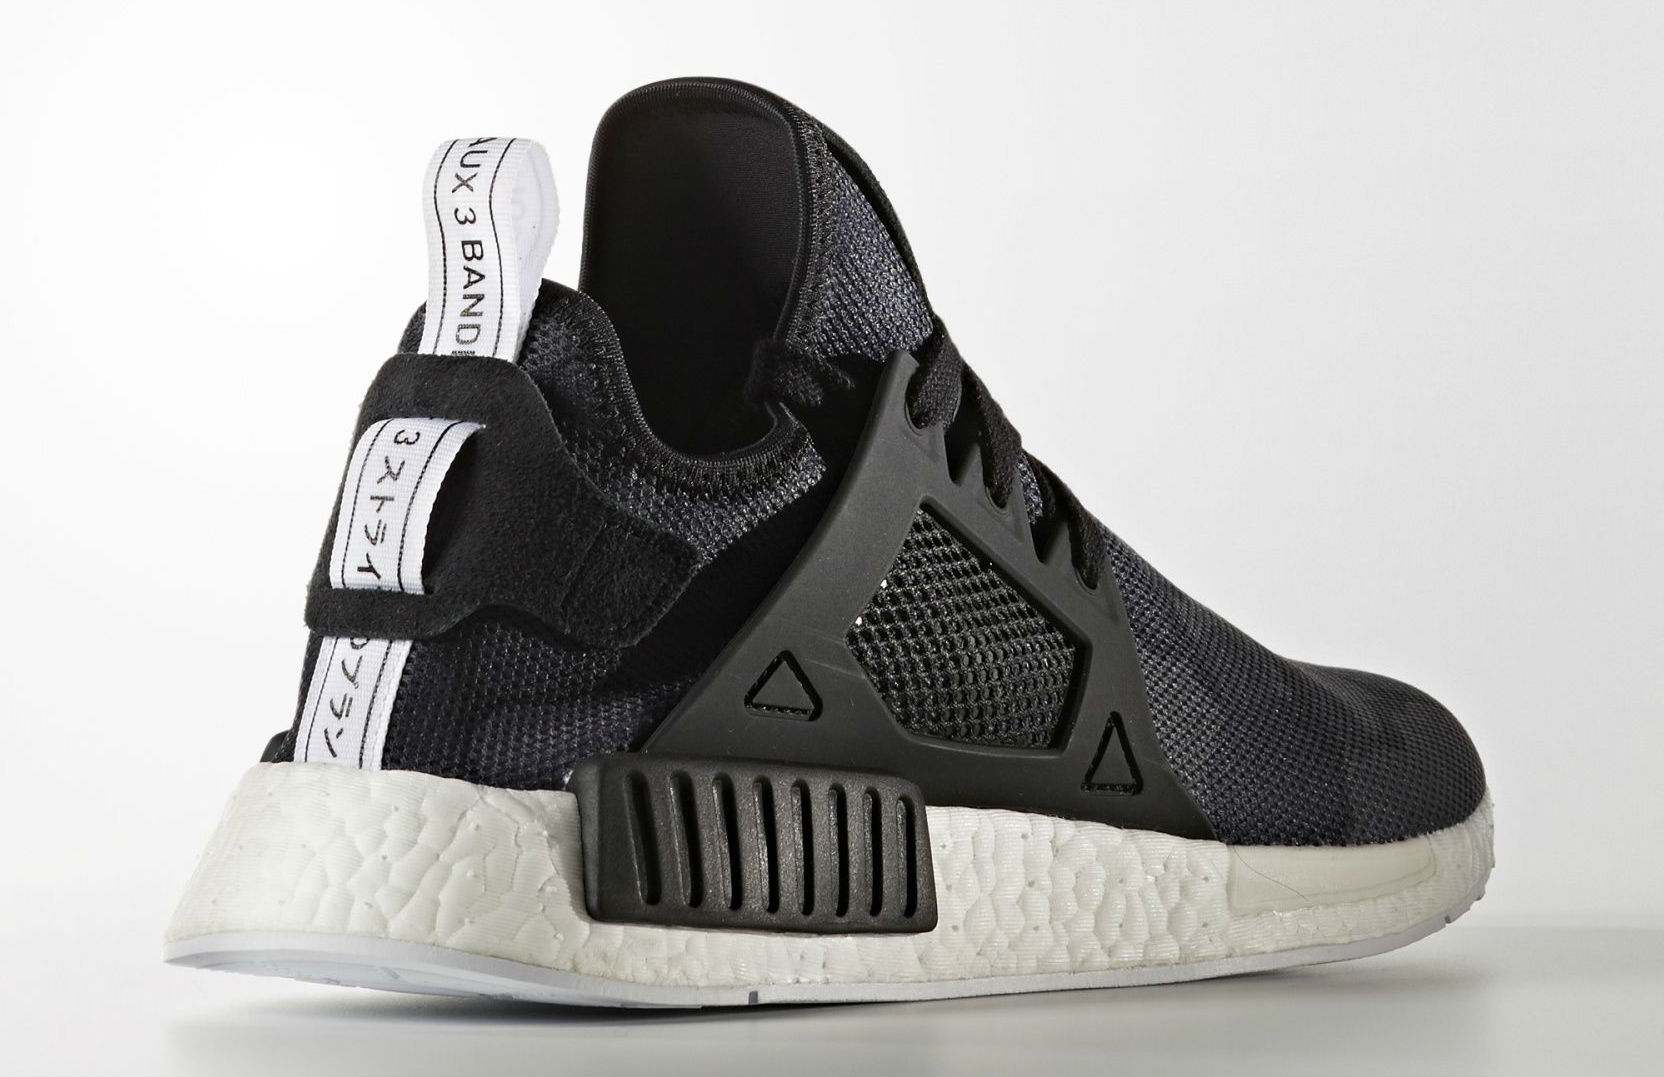 9fe0e59aafb02 adidas NMD XR1 Camo Pack Fall 2016 | Sole Collector